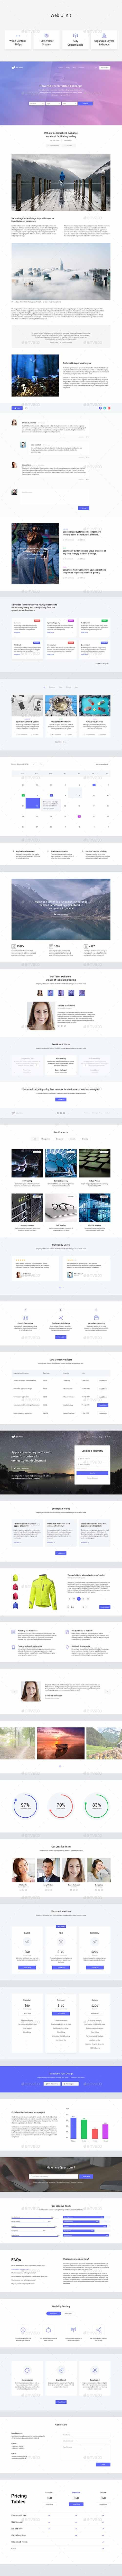 GR - Web Ui Kit 21484281